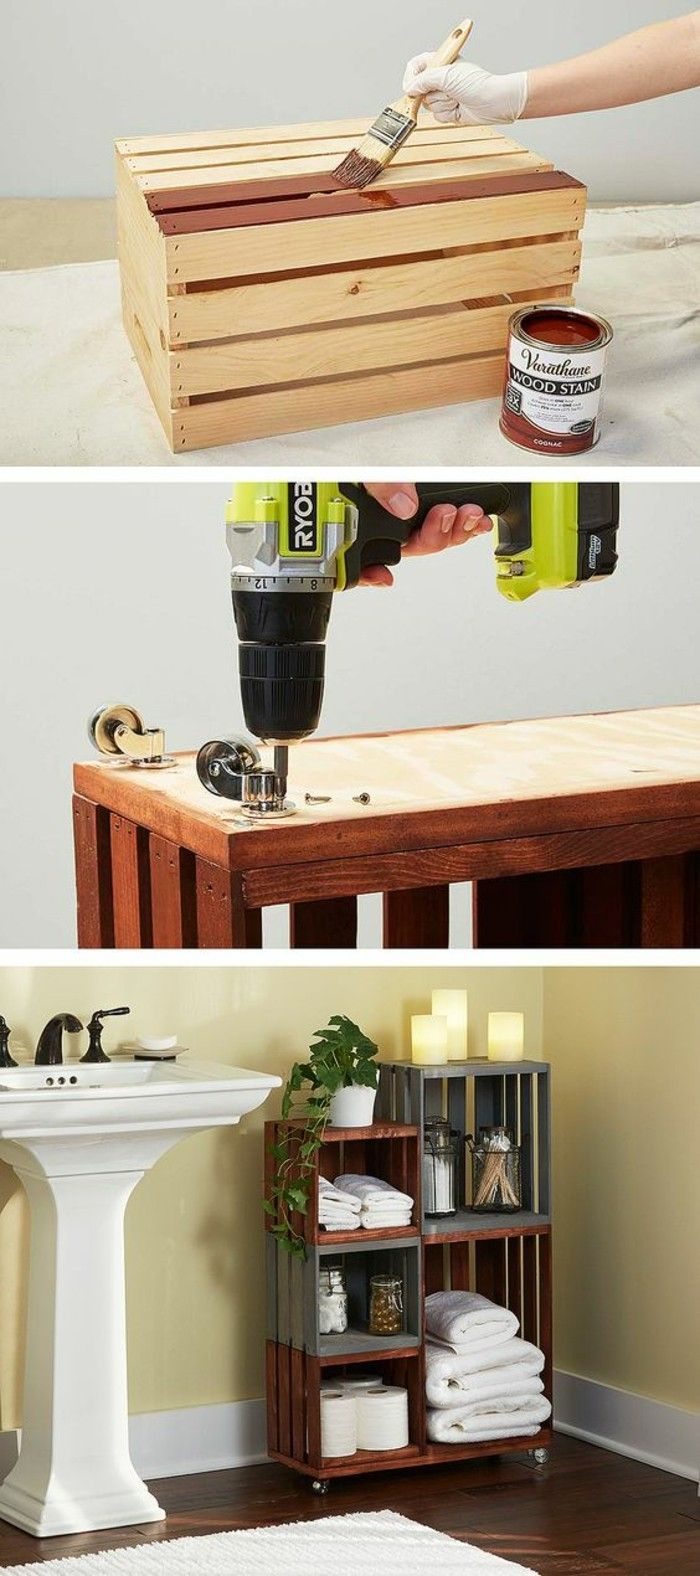 DIY furniture ideas and suggestions that can inspire you DIY furniture ideas and suggestions that can inspire you